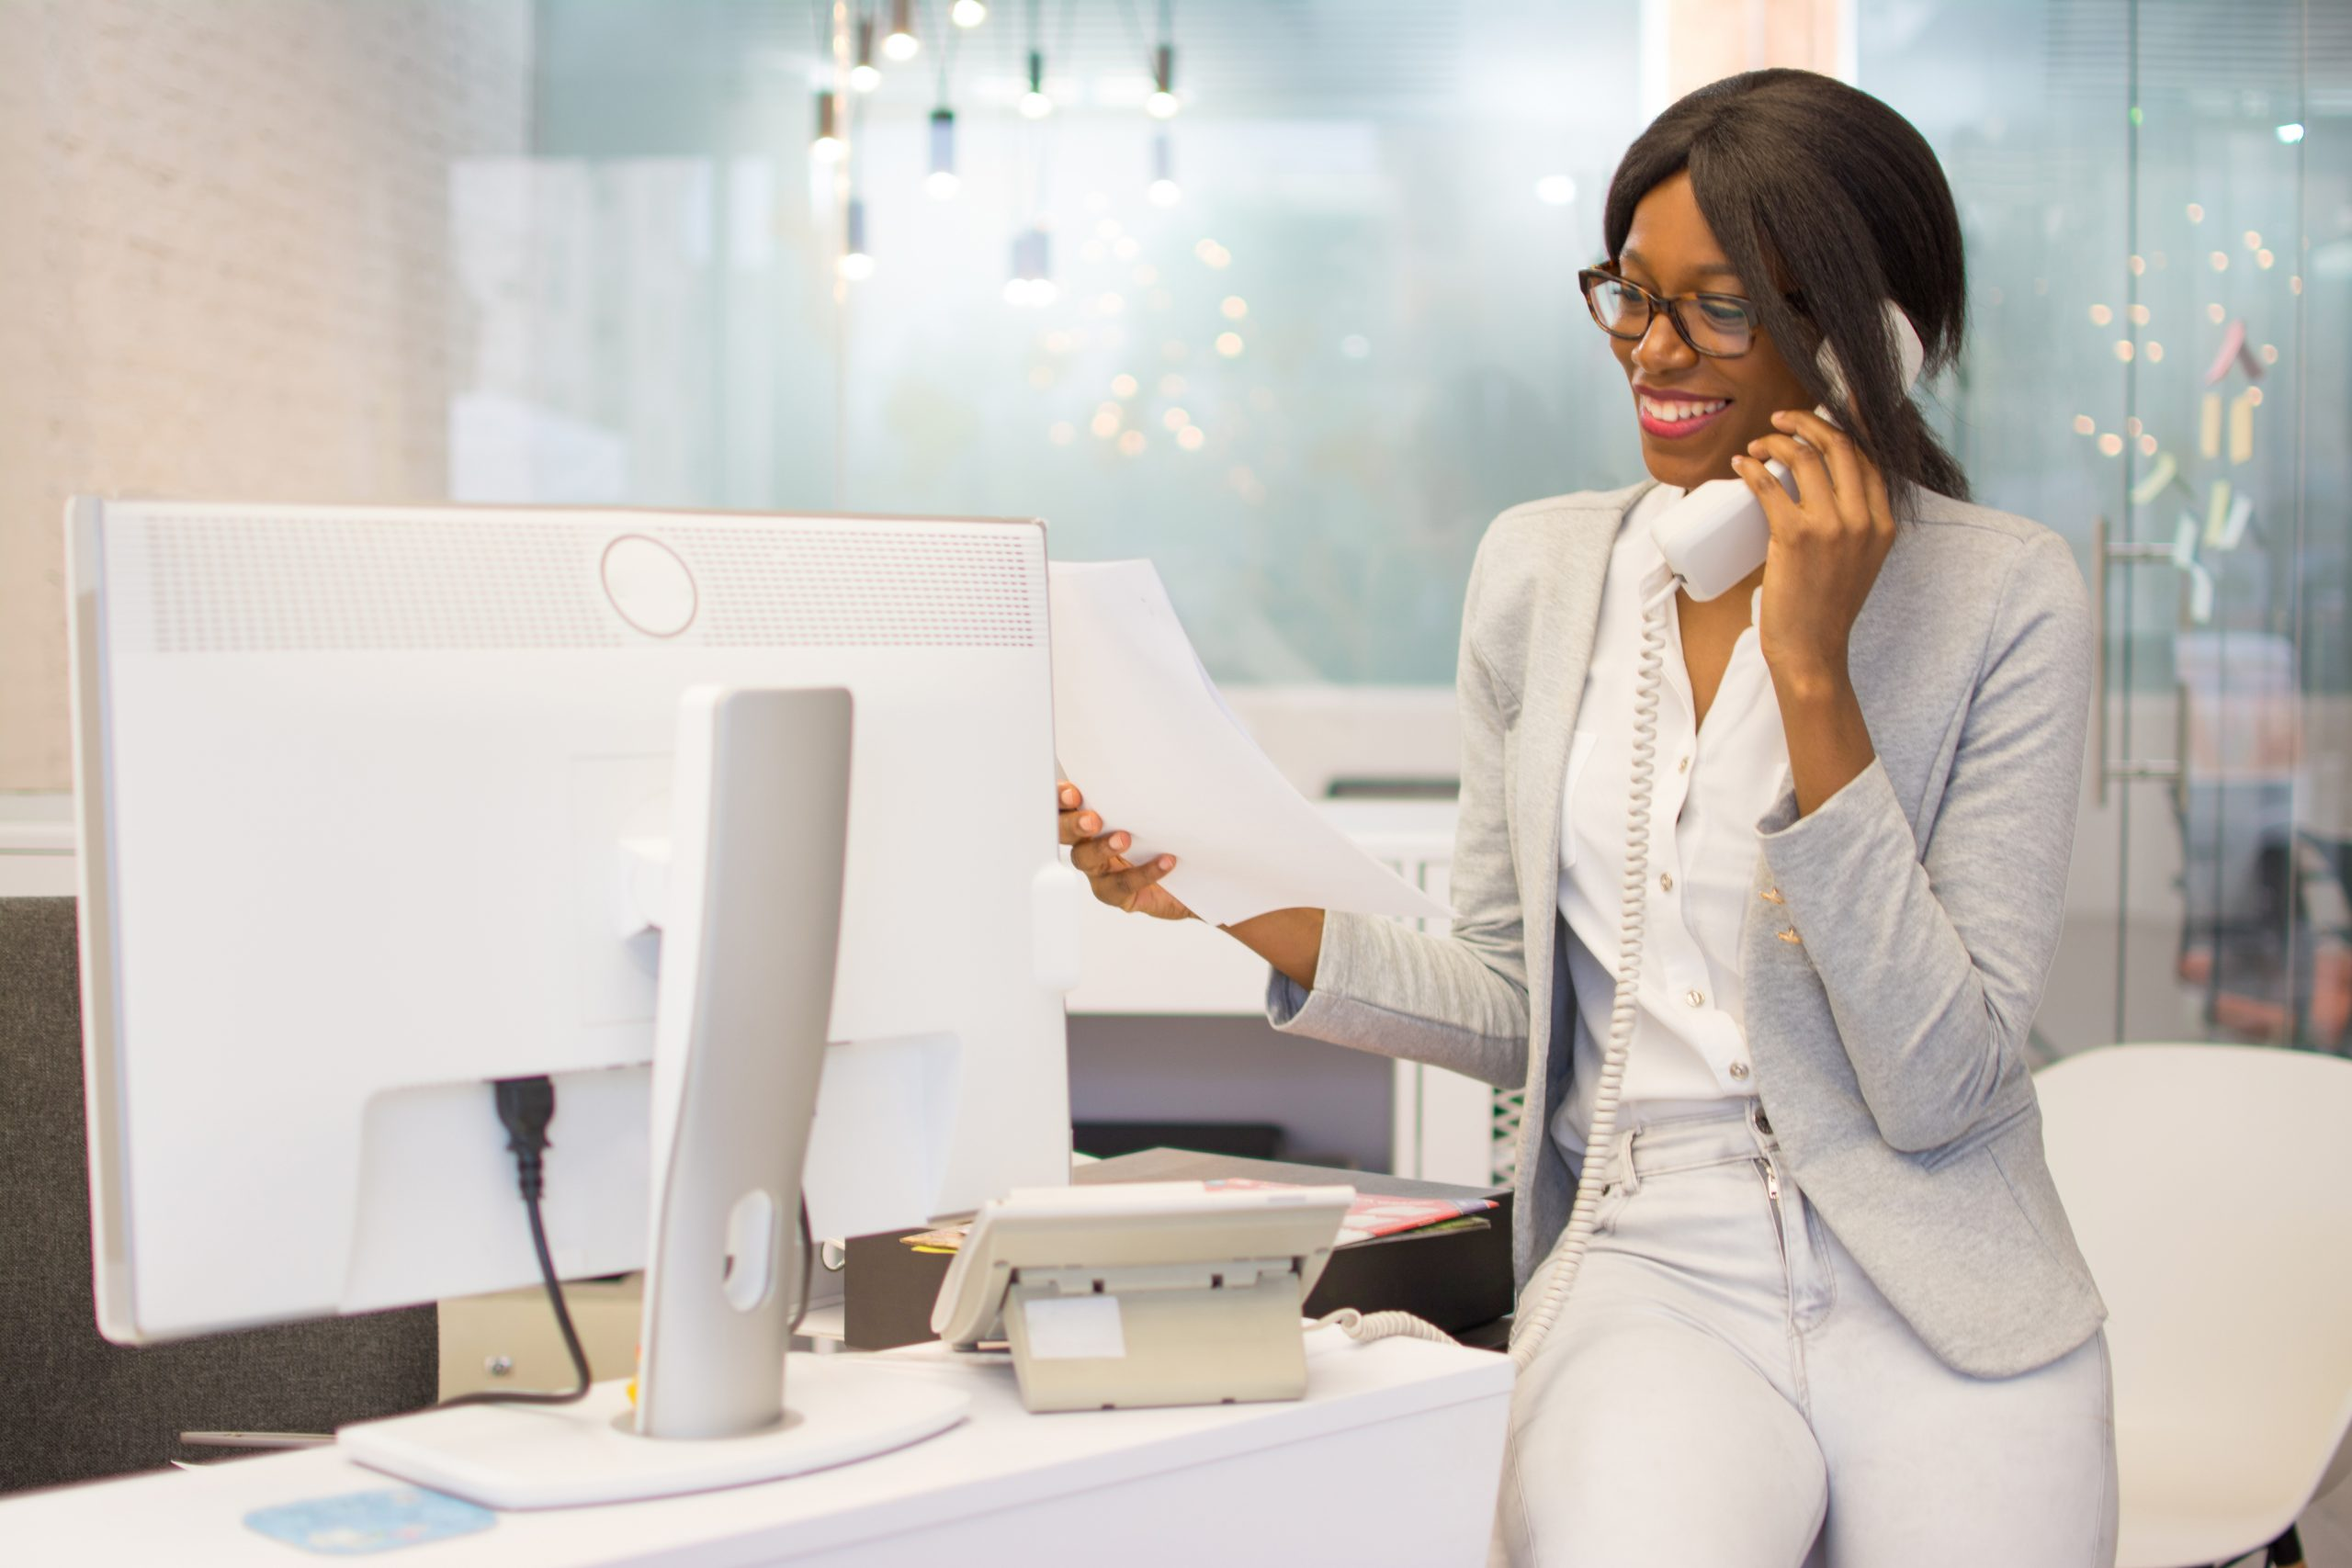 Young woman secretary working in modern office and talking on a VoIP phone.